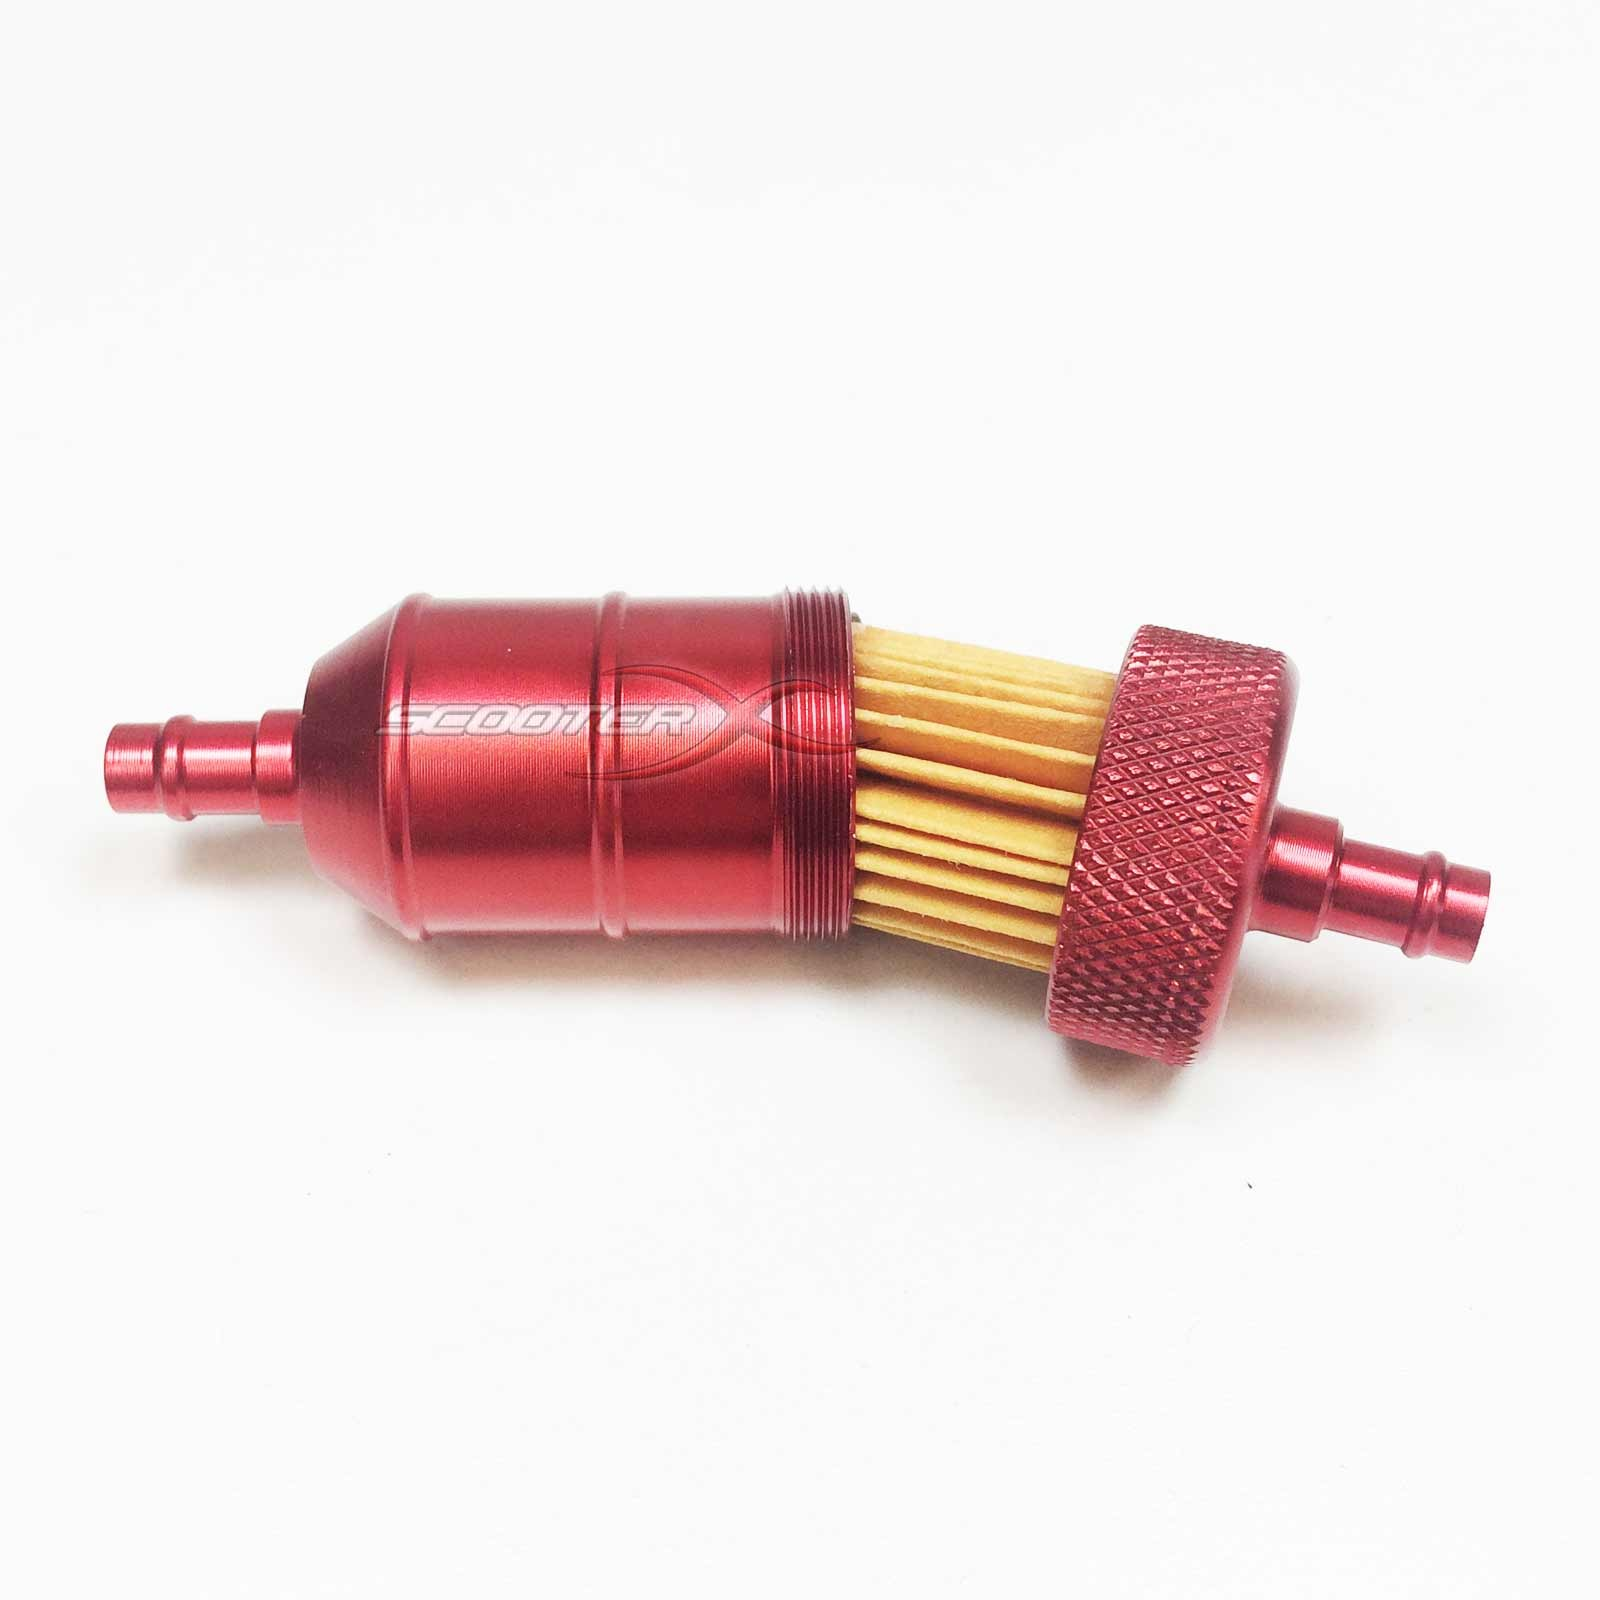 ... red anodized fuel filter 1/4 flange ...